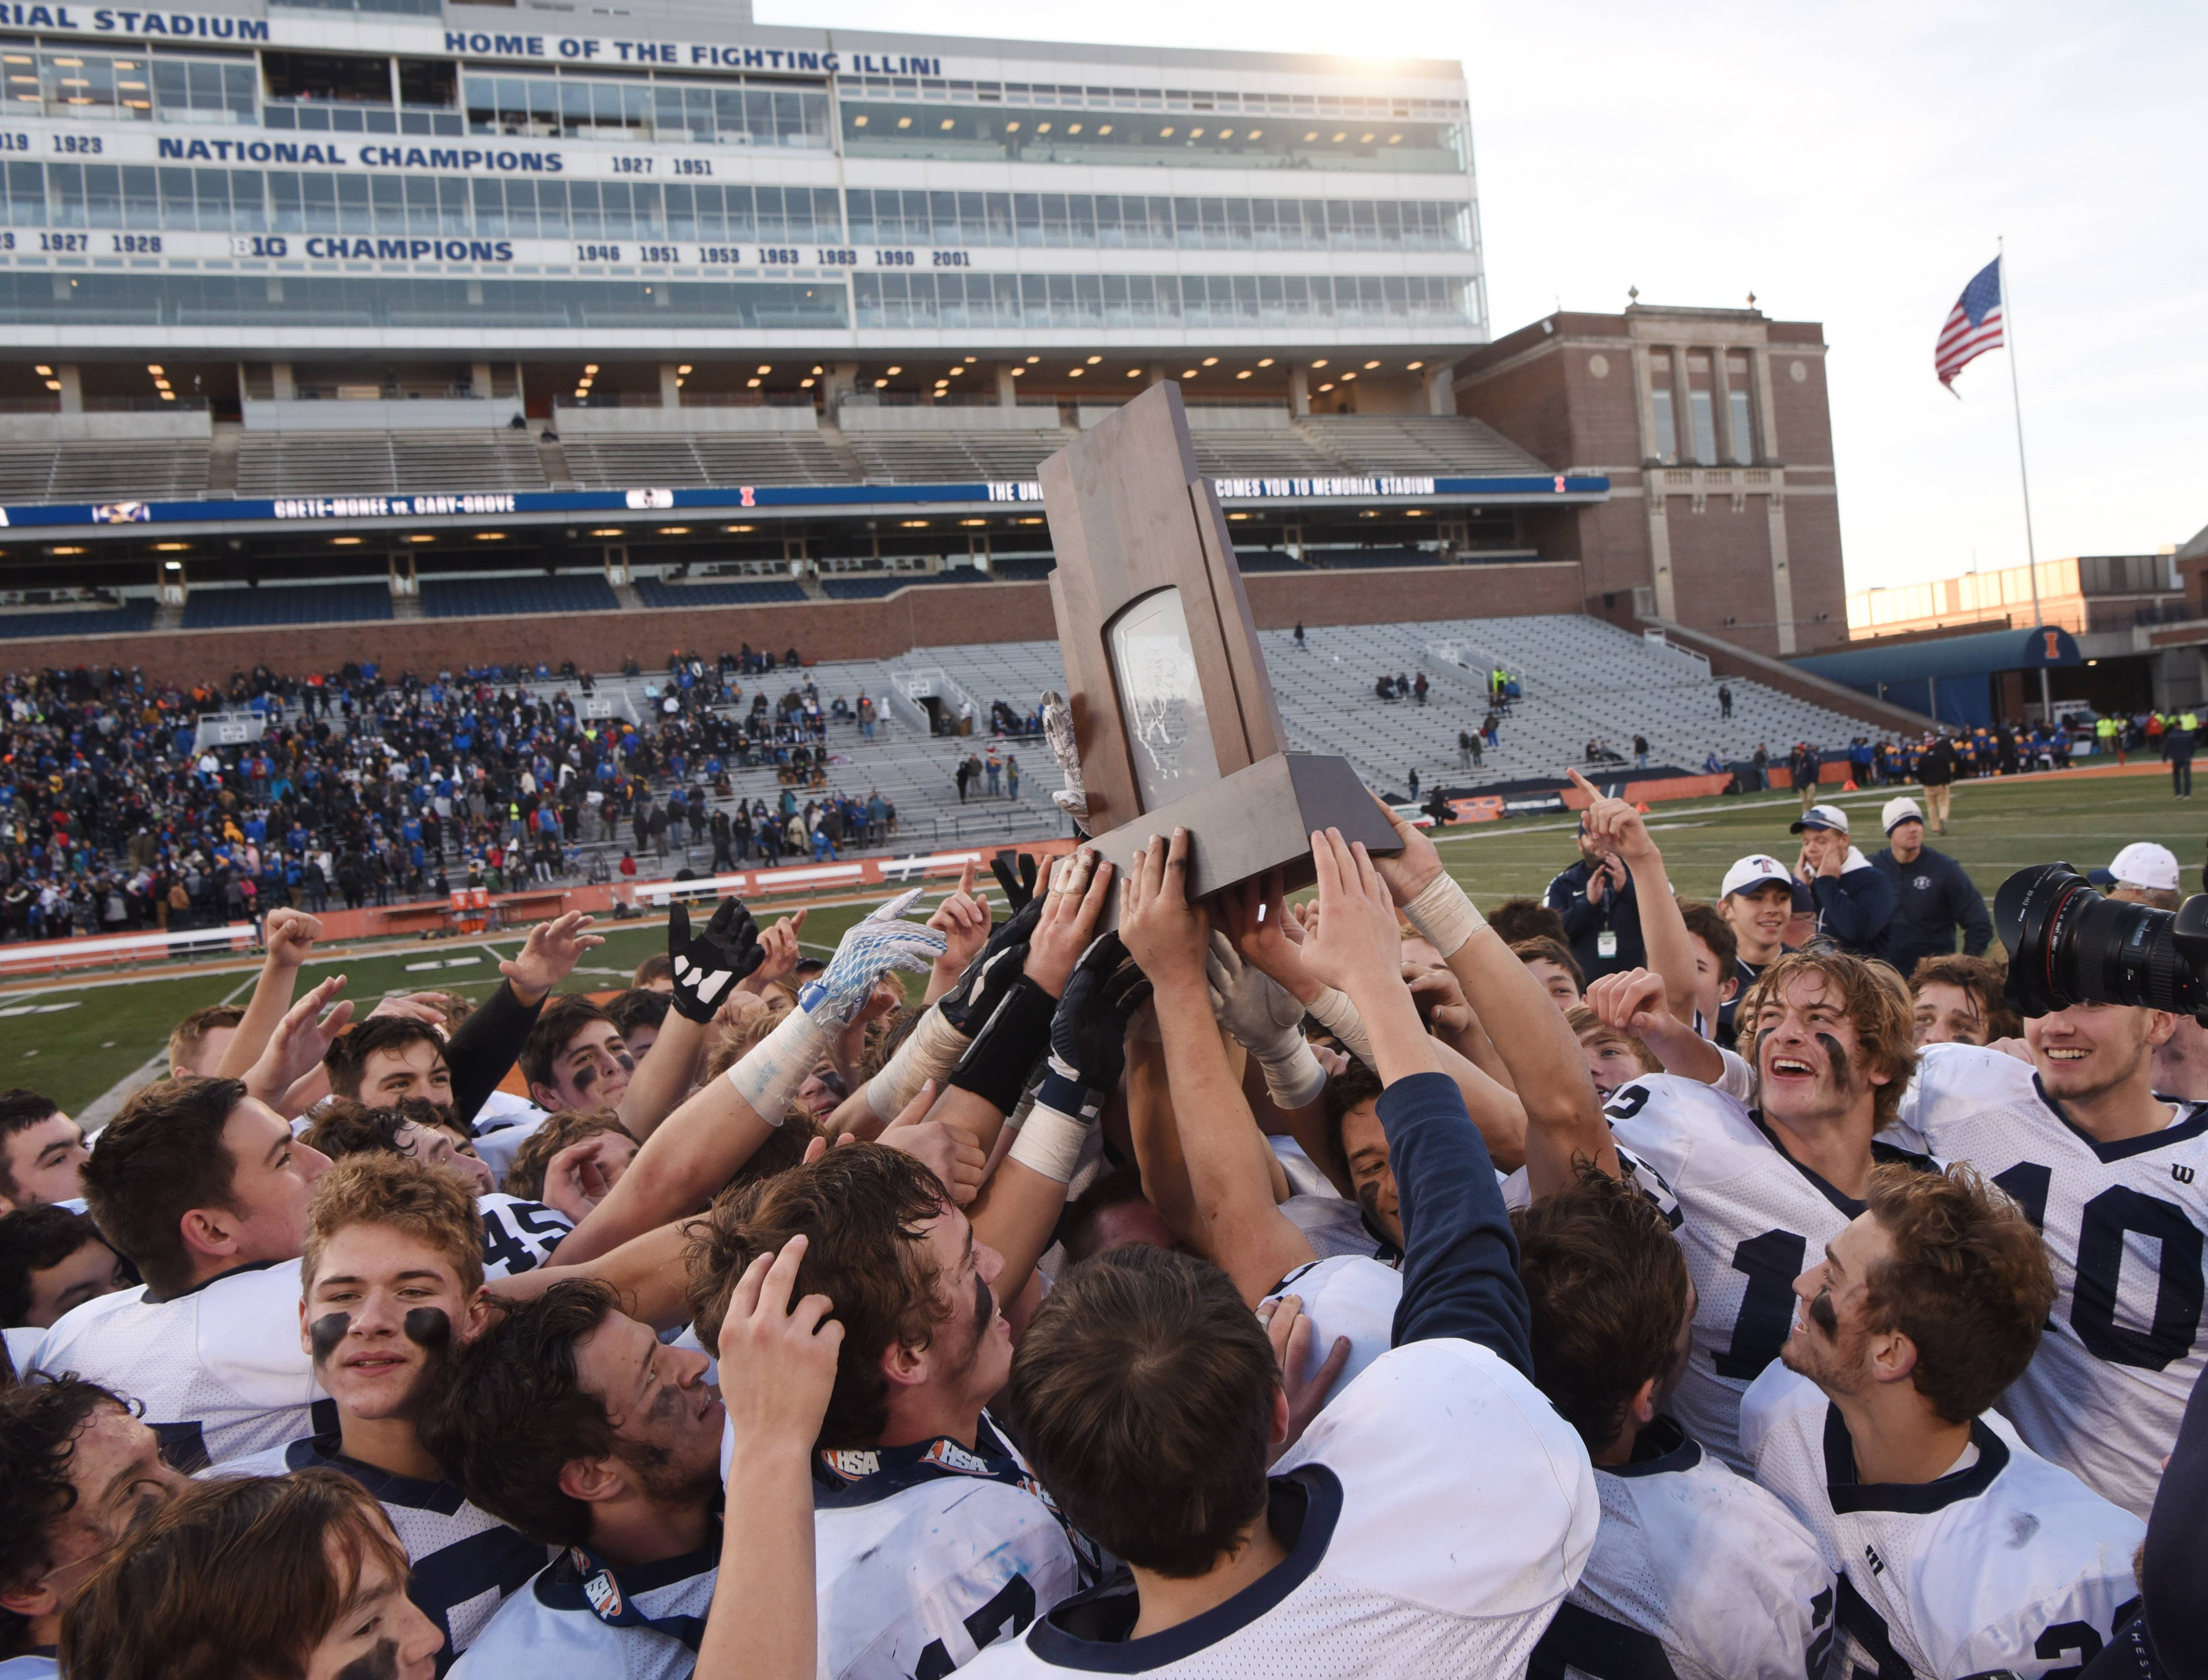 Cary-Grove celebrates with its trophy following the Trojans' 35-13 victory over Crete-Monee in the Class 6A state football championship at Memorial Stadium in Champaign Saturday.